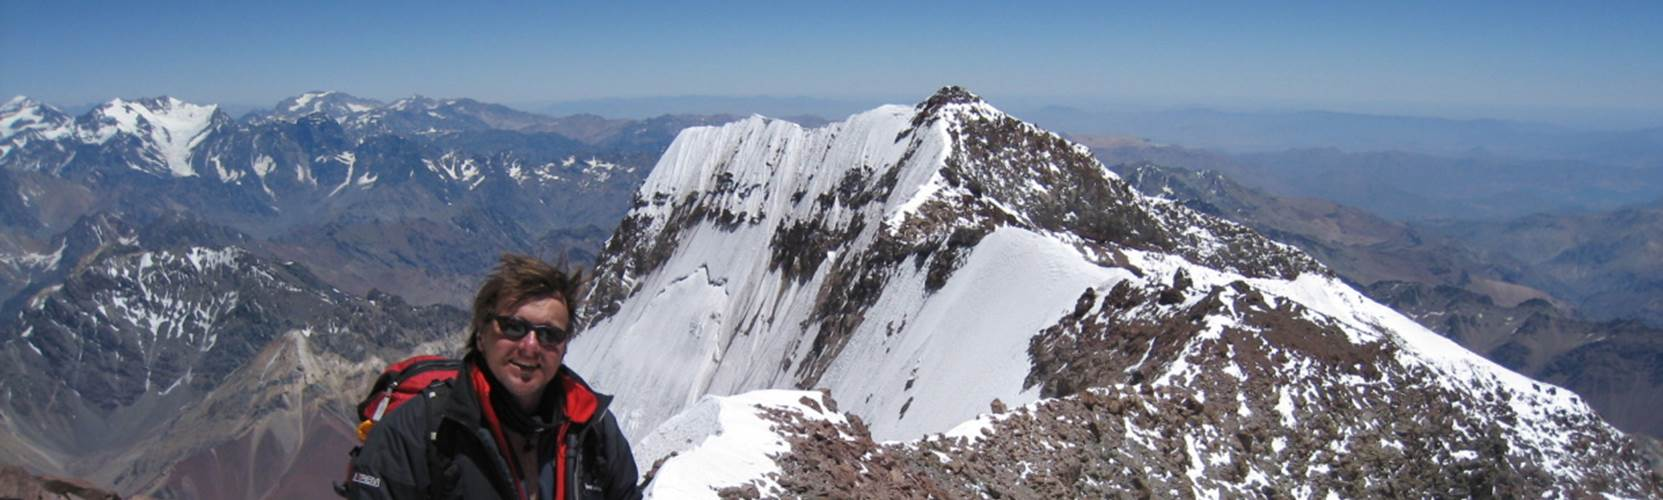 Climbs in the Andes - Mount Aconcagua